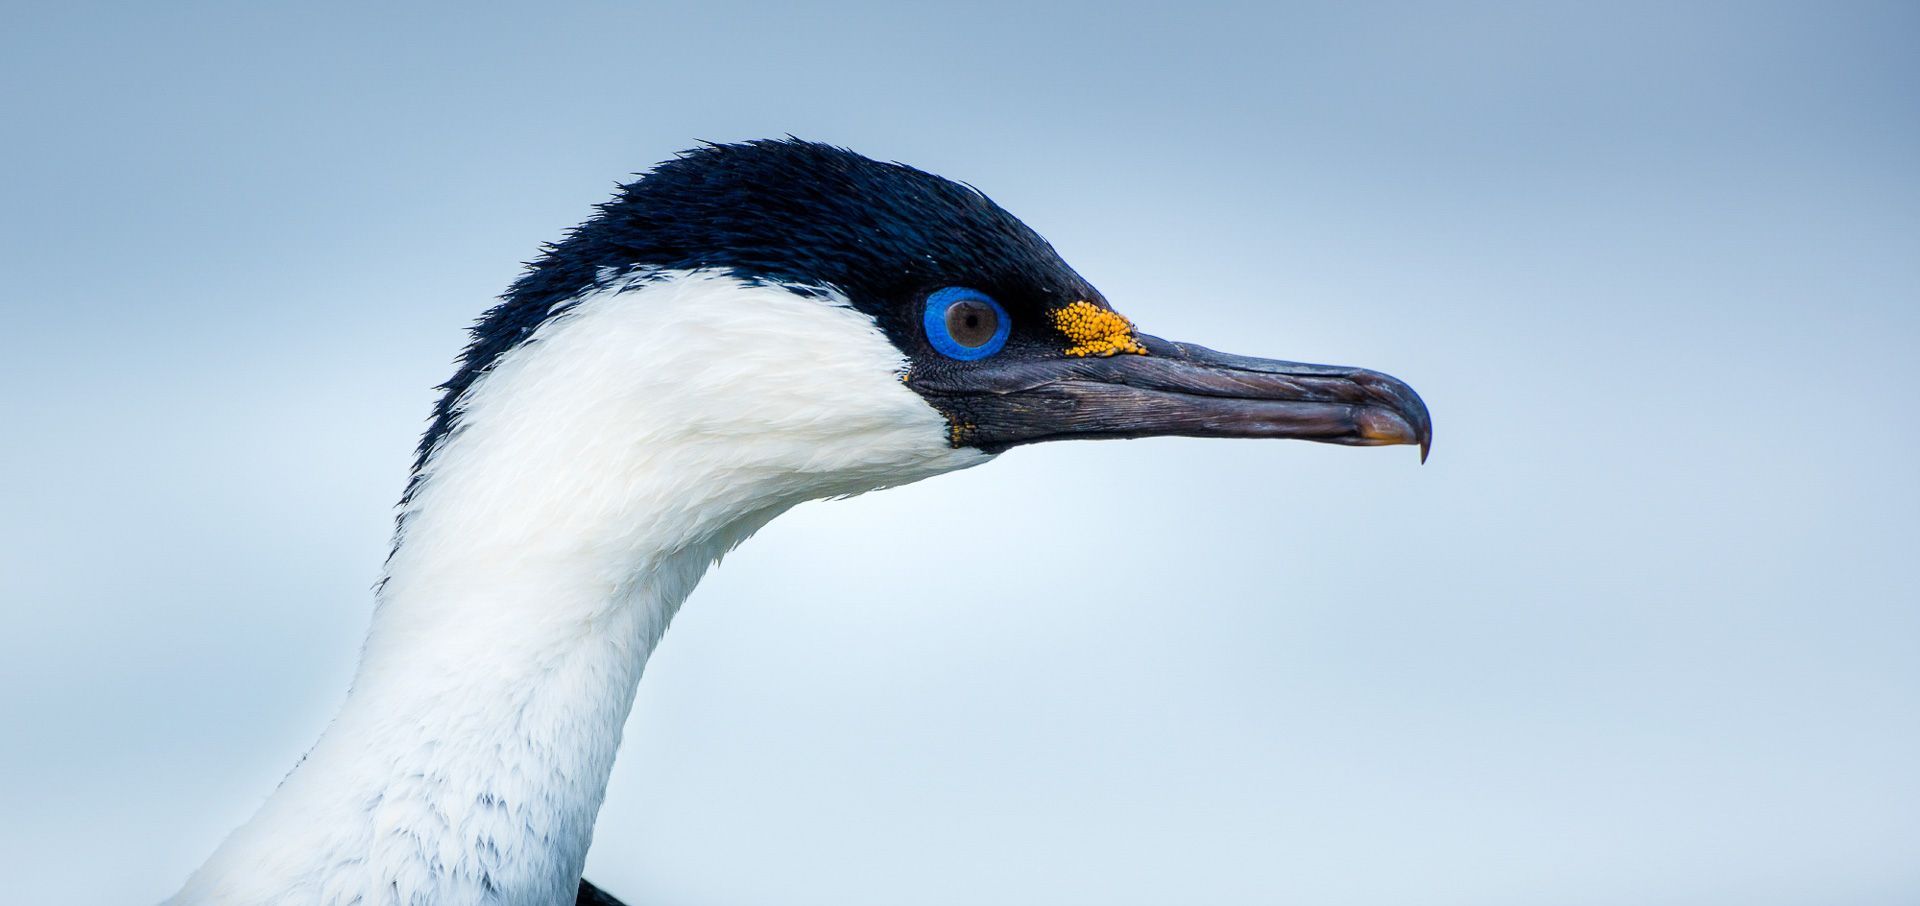 A blue-eyed cormorant or blue-eyed shag. Photography by Ruslan Eliseev, on an Antarctica Express Air-Cruise.